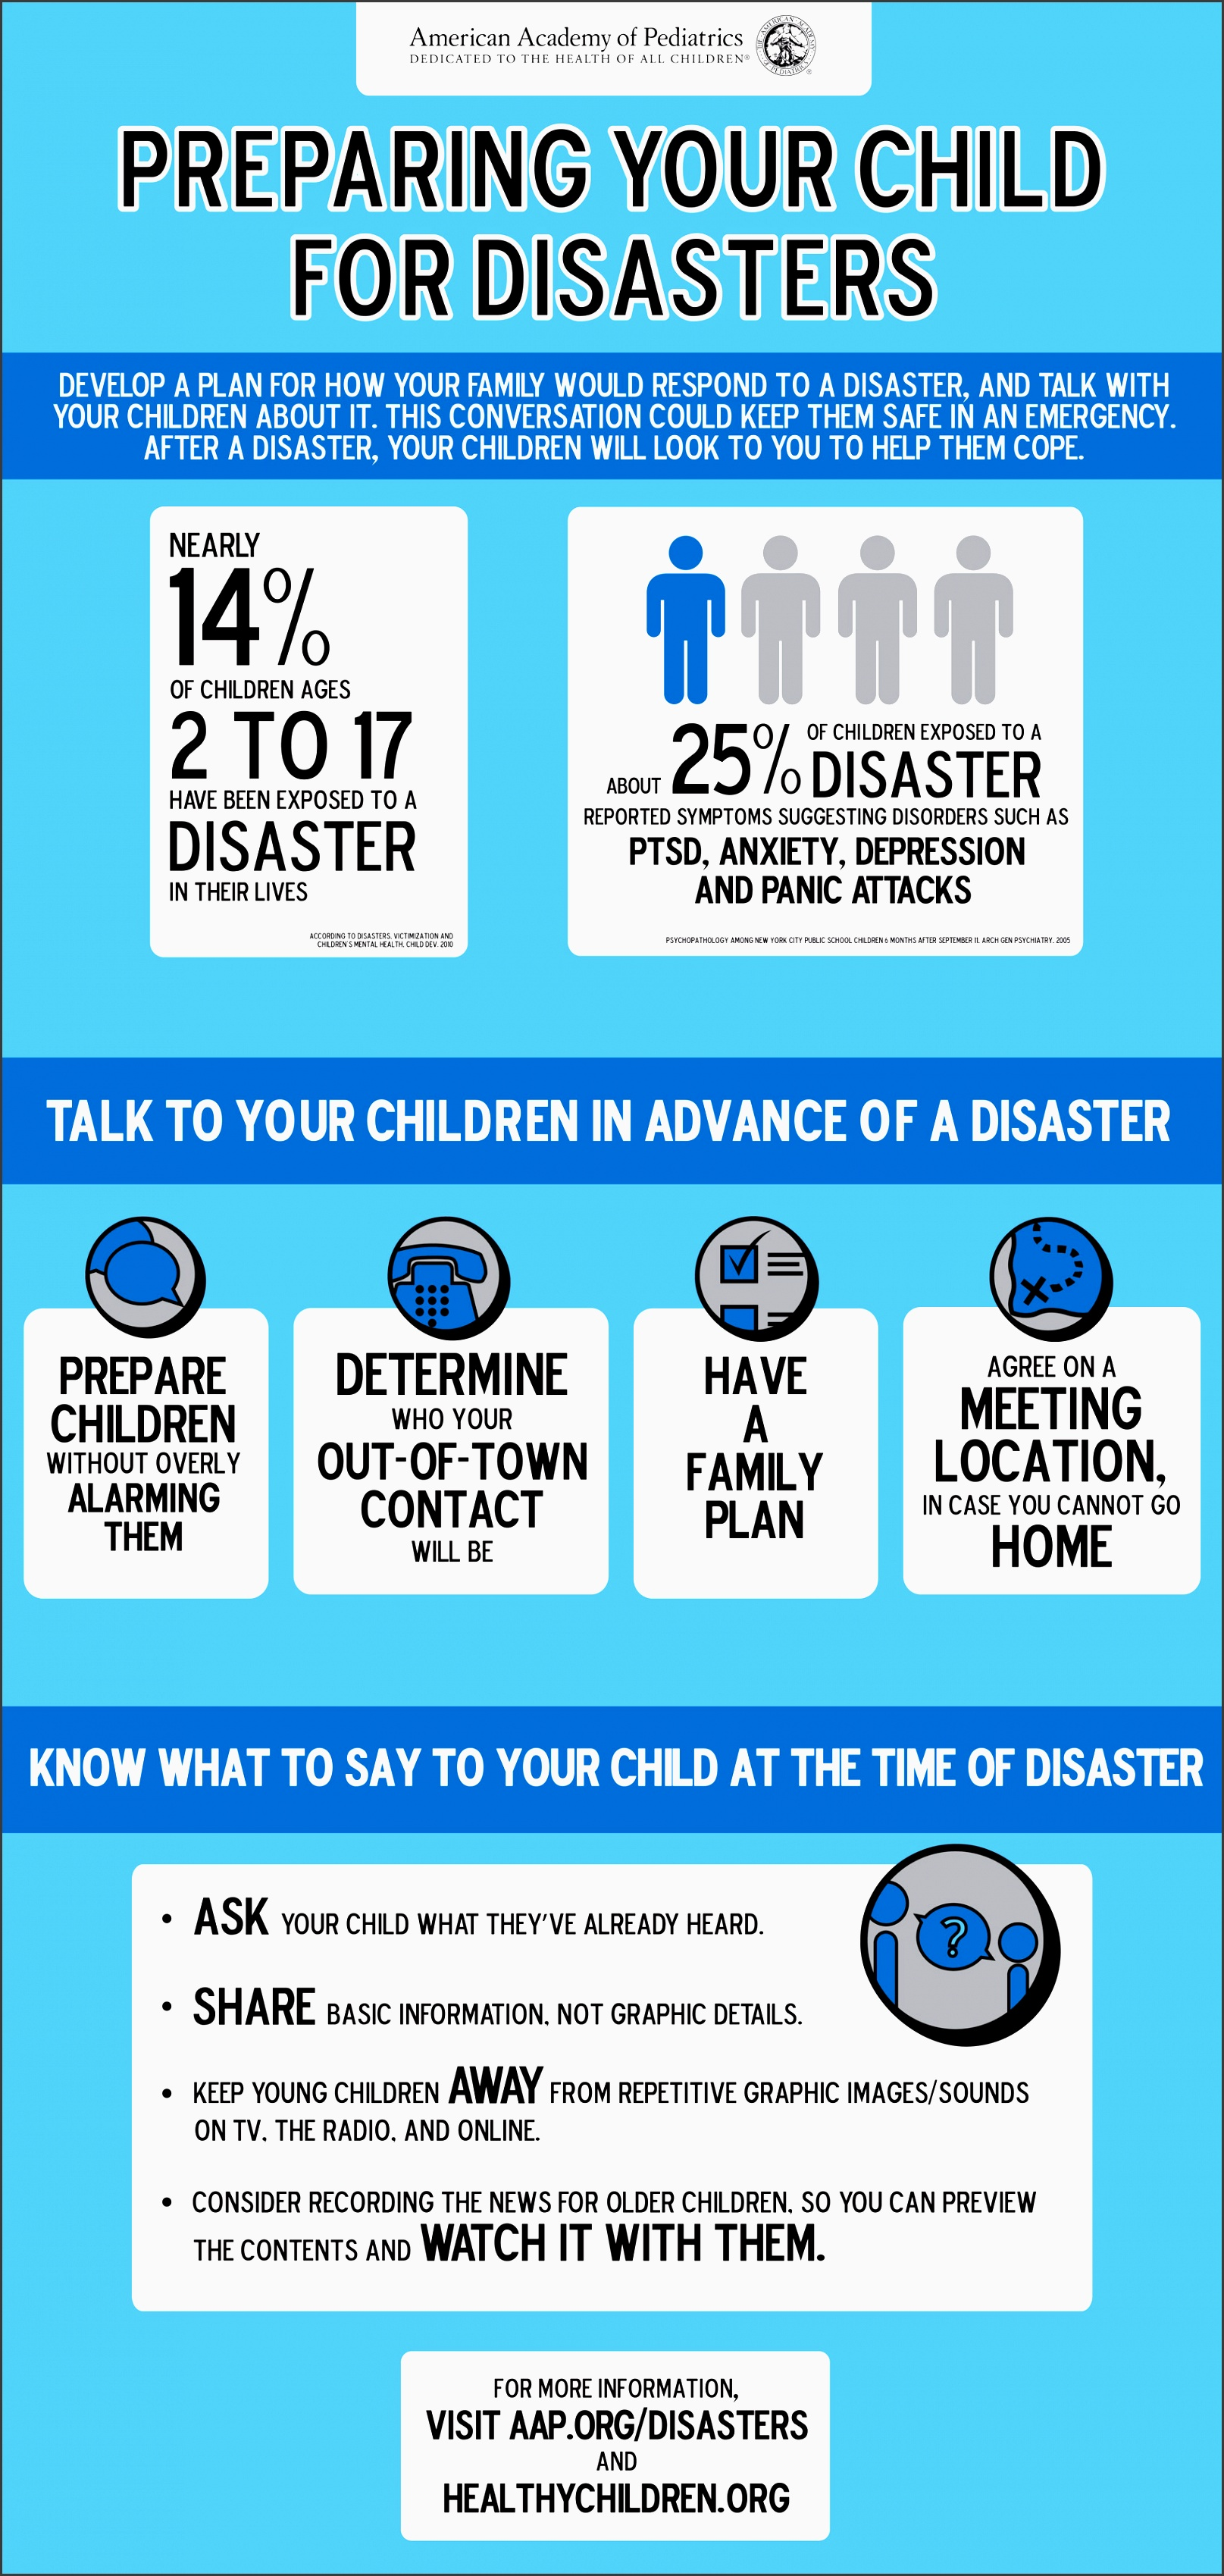 Home Disaster Plan Outline Template on earthquake preparedness plan template, home fire escape plan, operational plan template, home blood pressure template, home filing system template, project plan template, business marketing plan template, backup plan template, home insurance template, home emergency disaster plan, home disaster recovery plan, crisis plan template, emergency plan template,